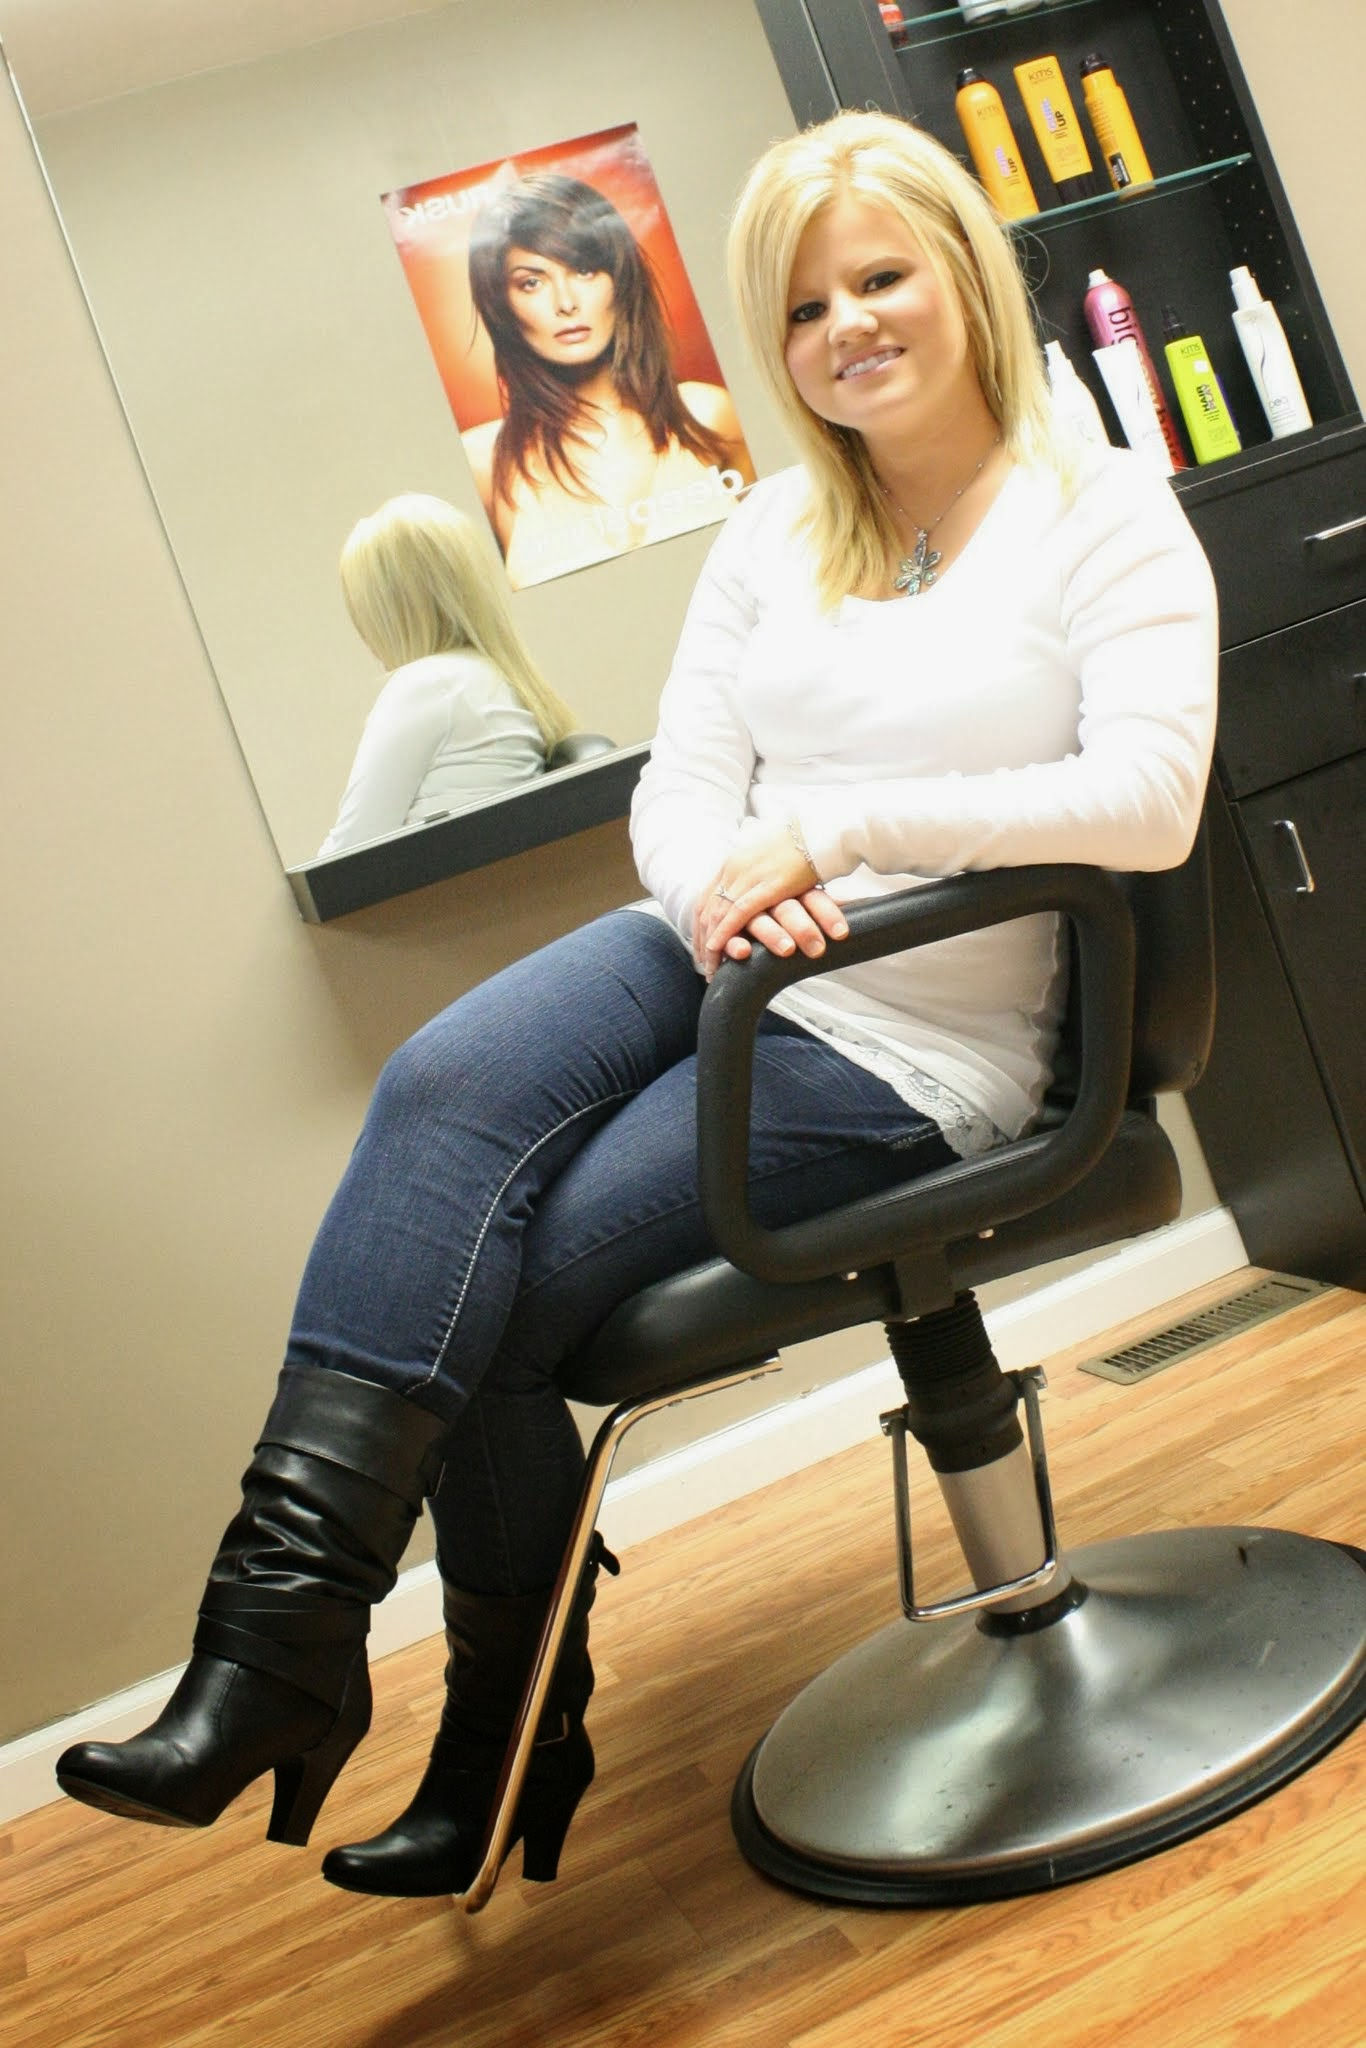 Hilary  Stylist/Nail Tech  Hilary has been with us 7 years. She specializes in giving relaxing, rejuvenating manicures & pedicures. Cutting, Coloring, & Texture techniques are no challenge for her. She is also talented at formal styling- proms, bridal, or just a night out- She will make sure you turn heads! Available by appointment Monday 9am-8pm; Tuesday 9am-8pm; Friday 9am-6pm & Saturday 8am-1pm.